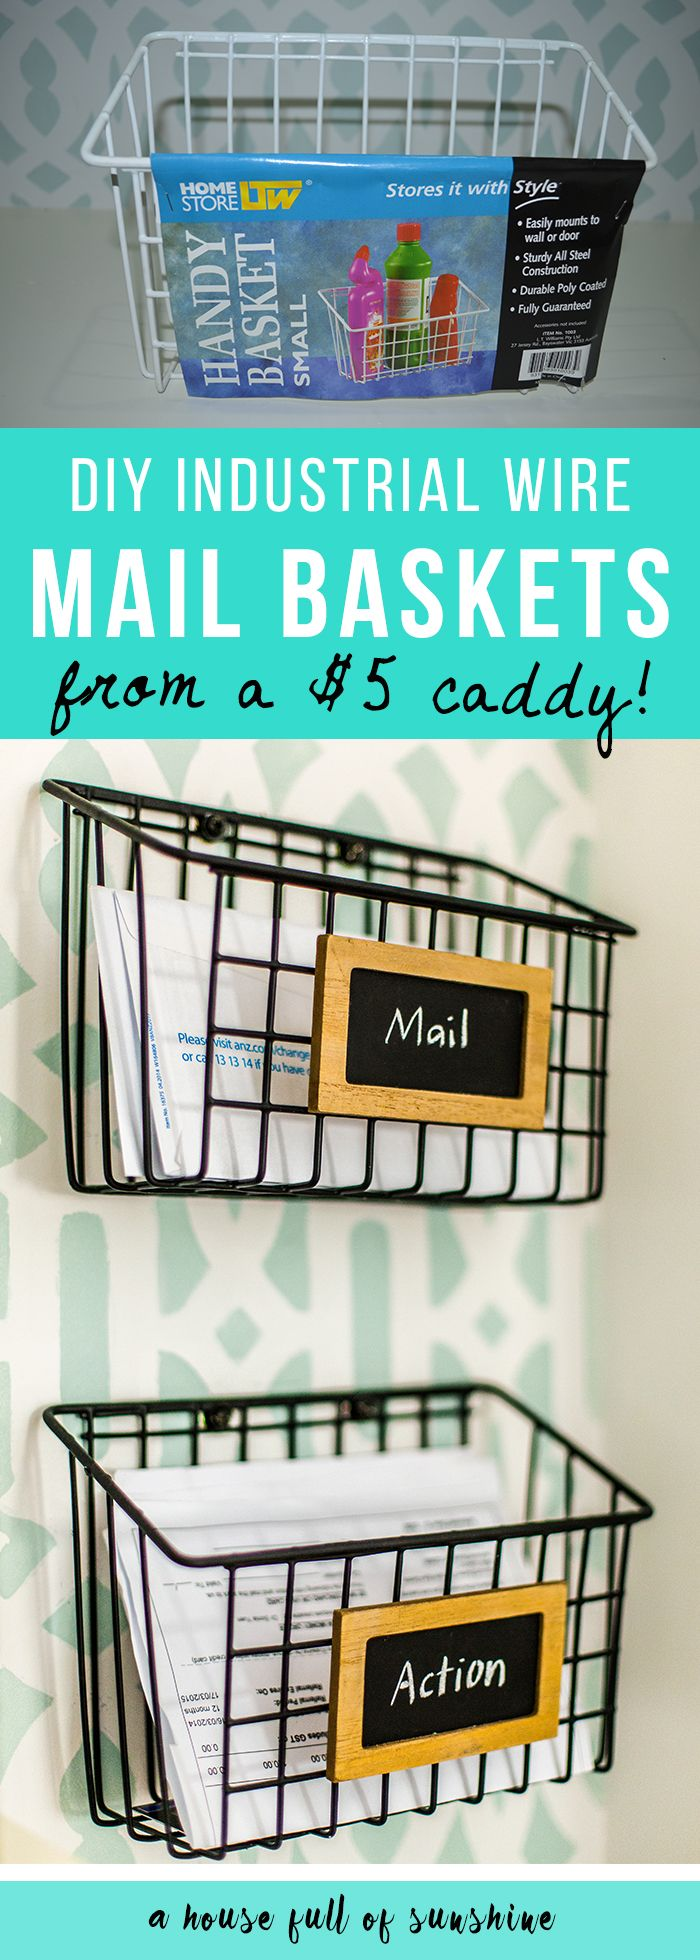 Wow! DIY Industrial wire mail baskets from a $5 cleaning caddy - such a clever i...